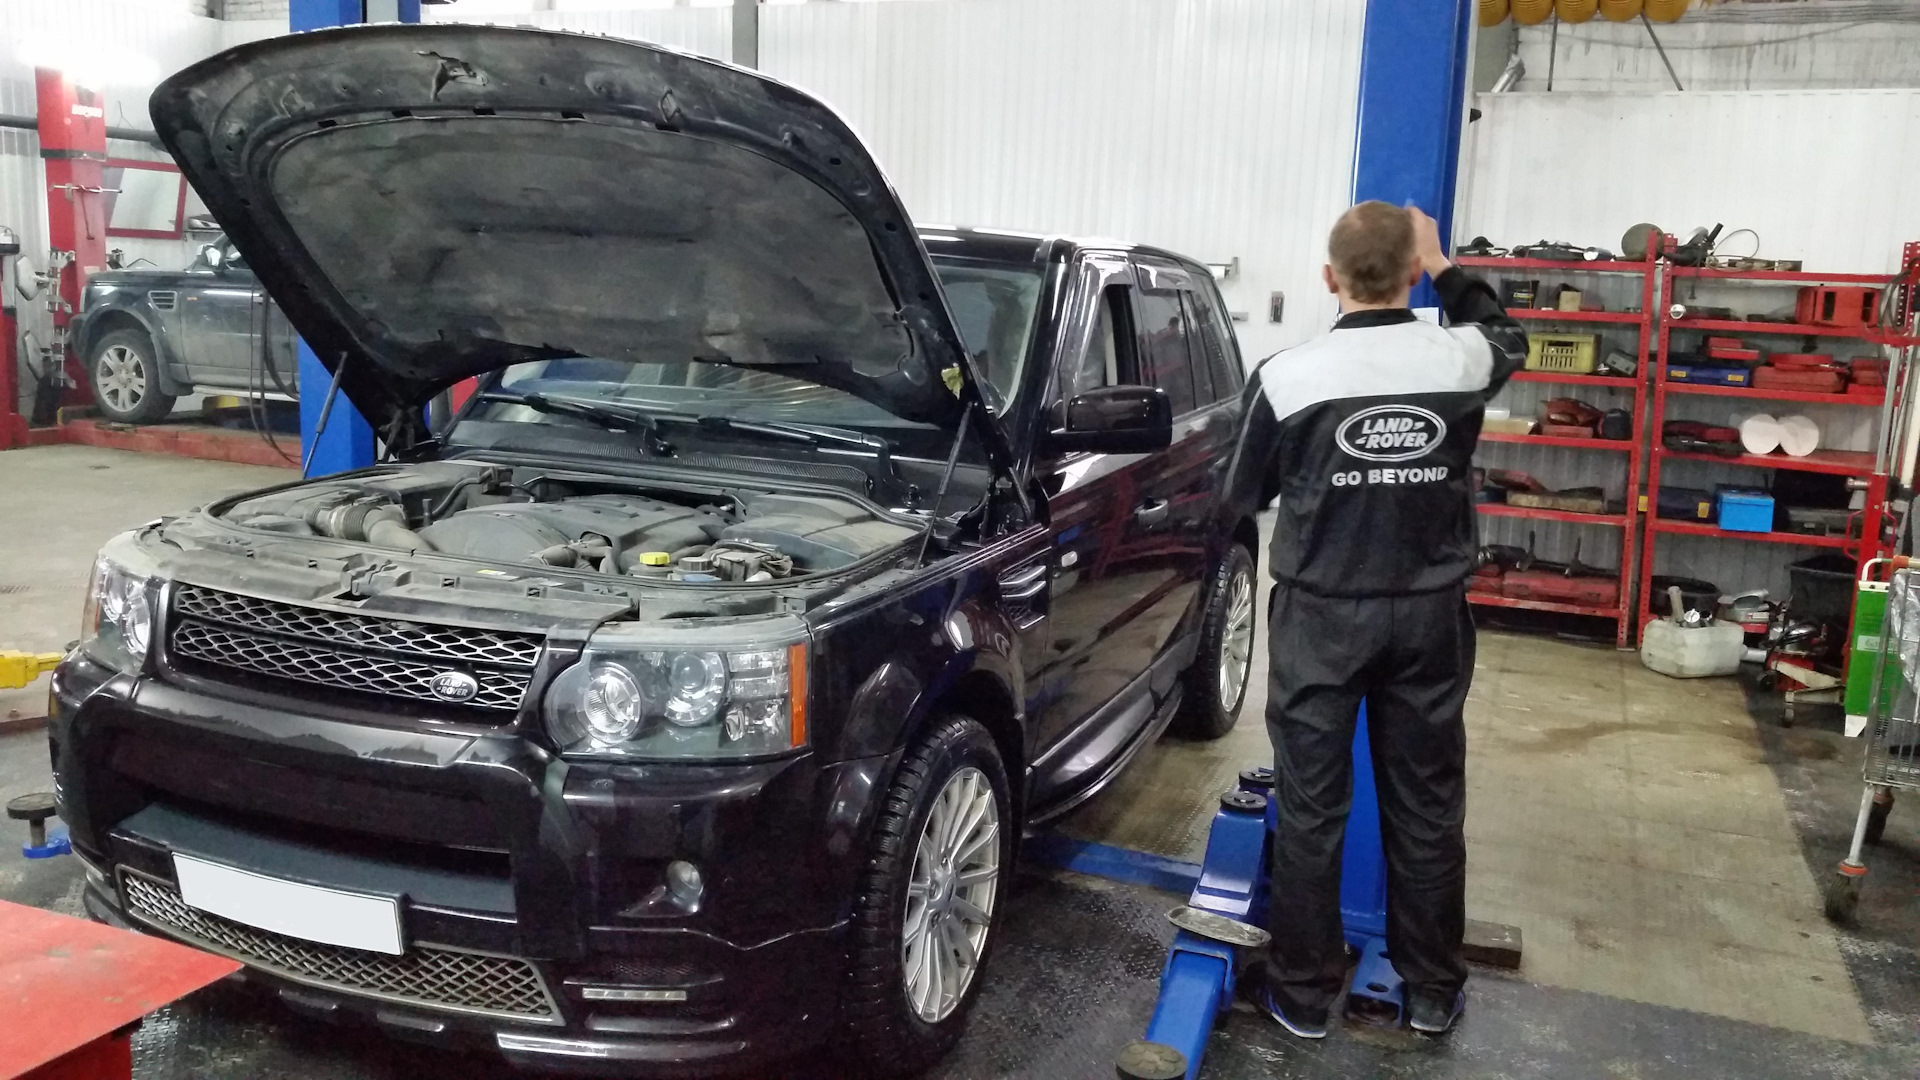 Oil change in automatic range rover sport rpm on drive2 on the table there is a necessary kit for replacing the transmission fluid in this gearbox 6 liters of original rrs zf oil about 55 liters of oil is solutioingenieria Gallery